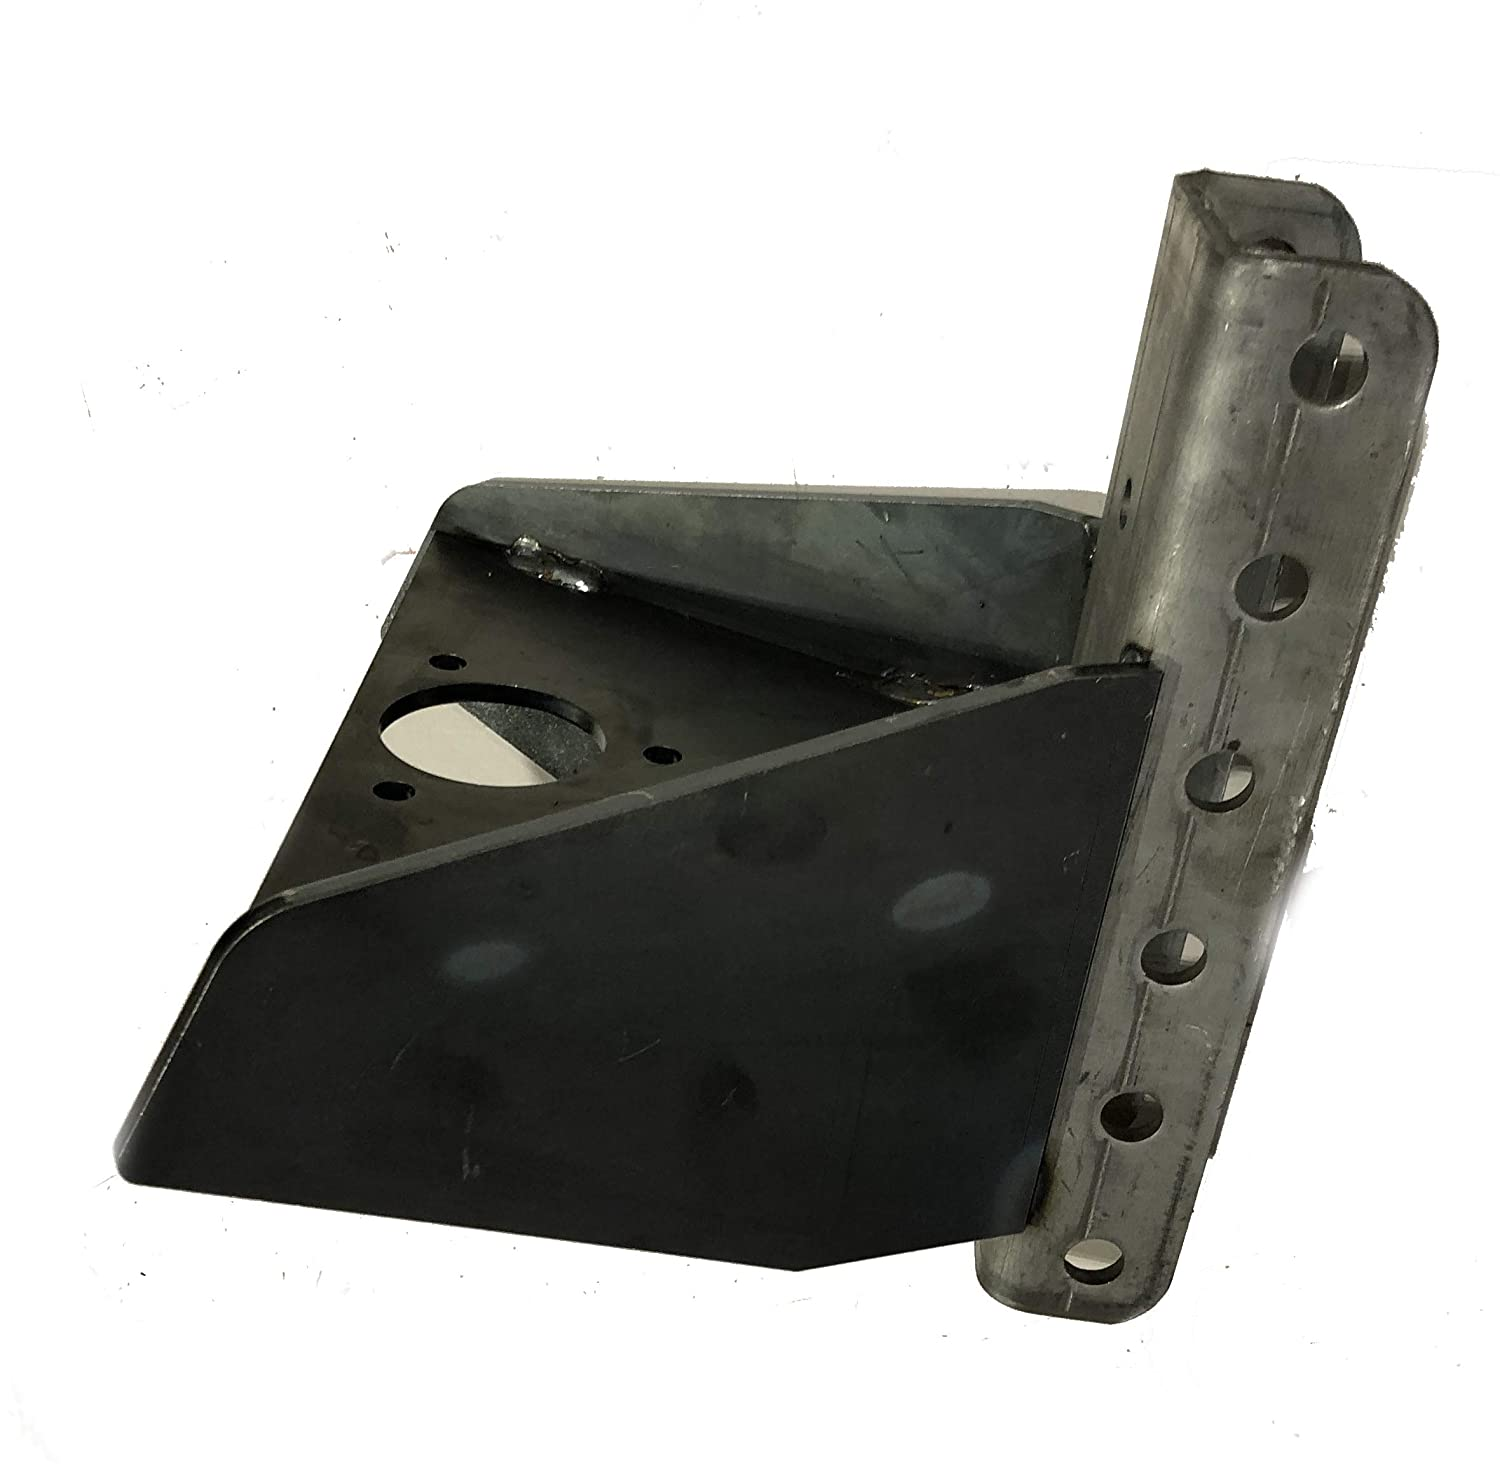 Shocker Hitch Vertical Channel Weld On Tongue Adapter for Trailer A-Frames Completely Welded